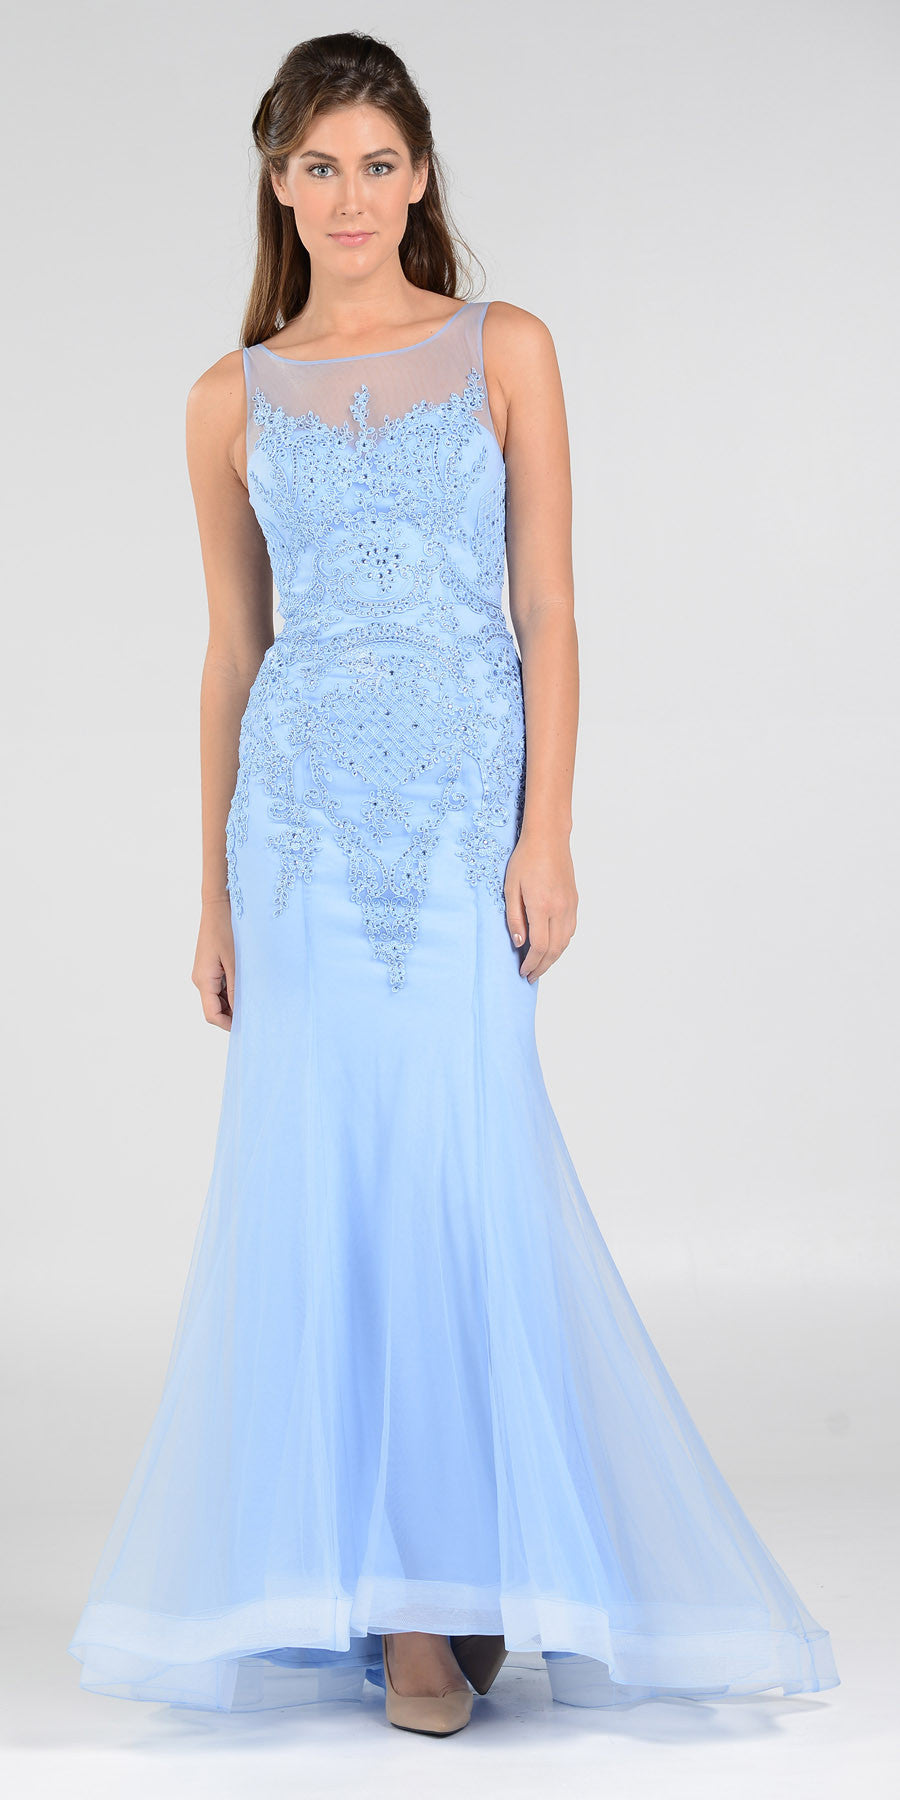 Poly USA 7338 Mermaid Silouette Prom Dress Periwinkle Sheer Neck